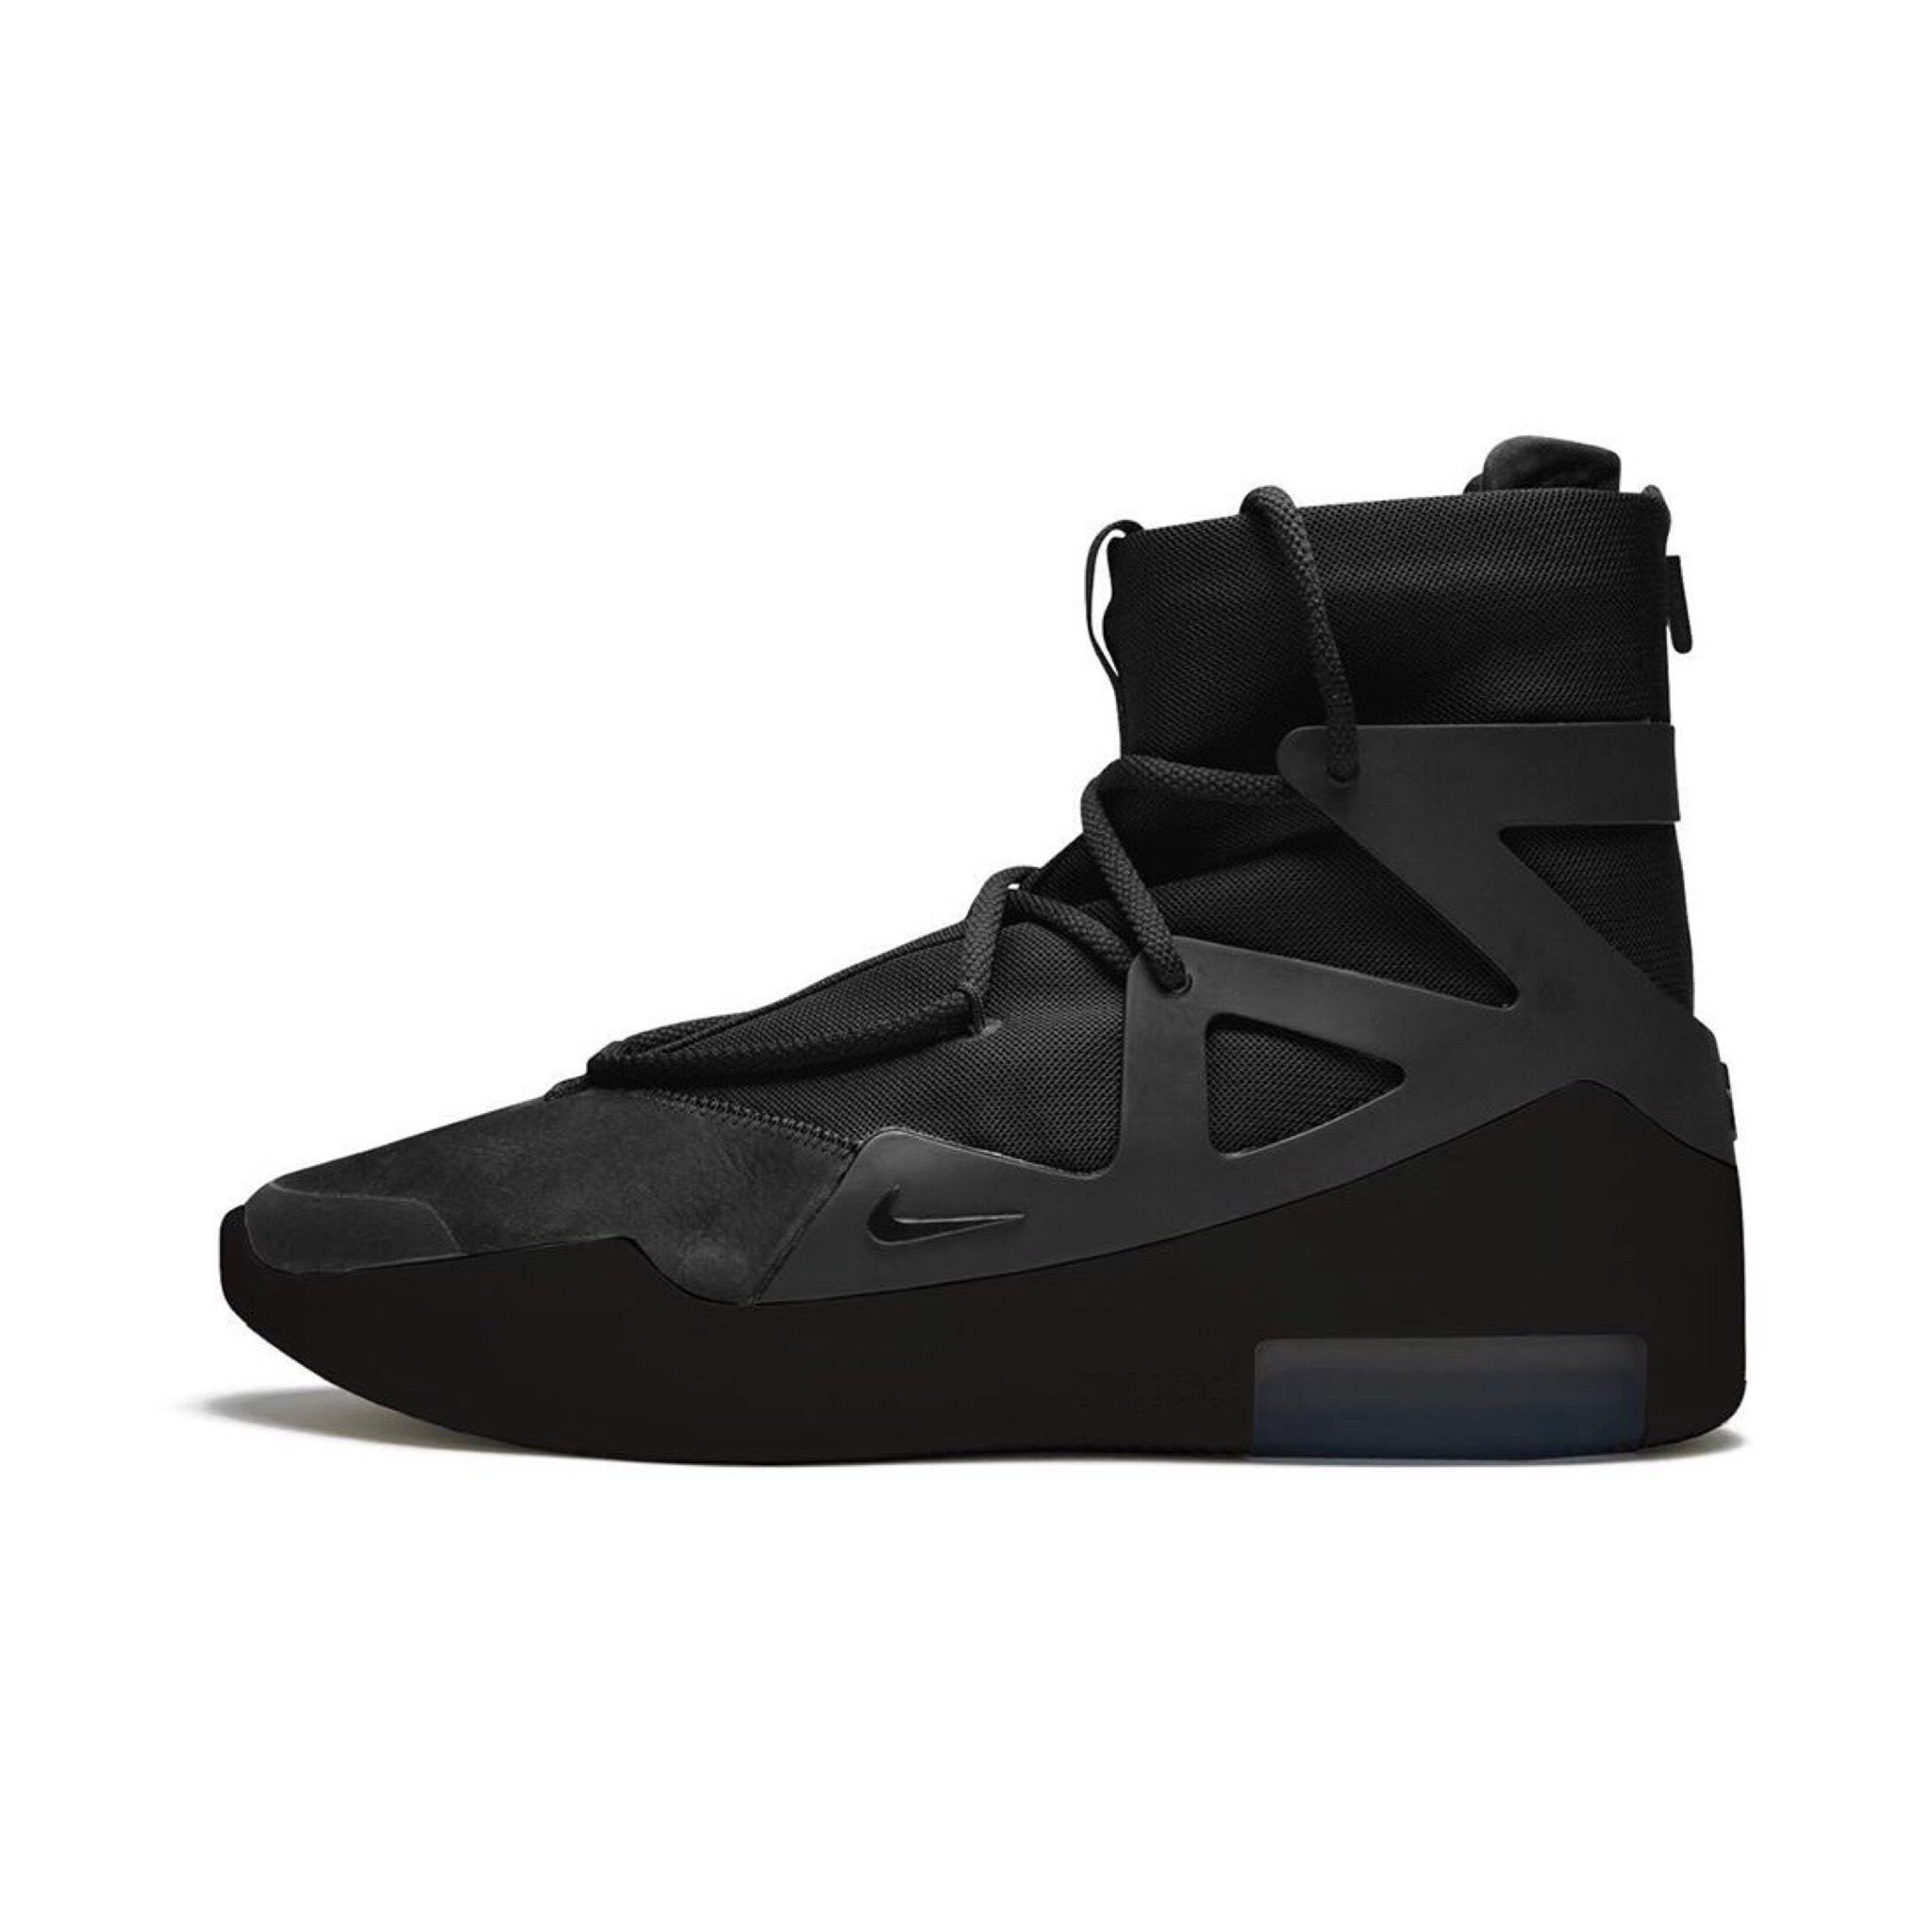 The 'Triple Black' Air Fear of God Gets a New Release Date